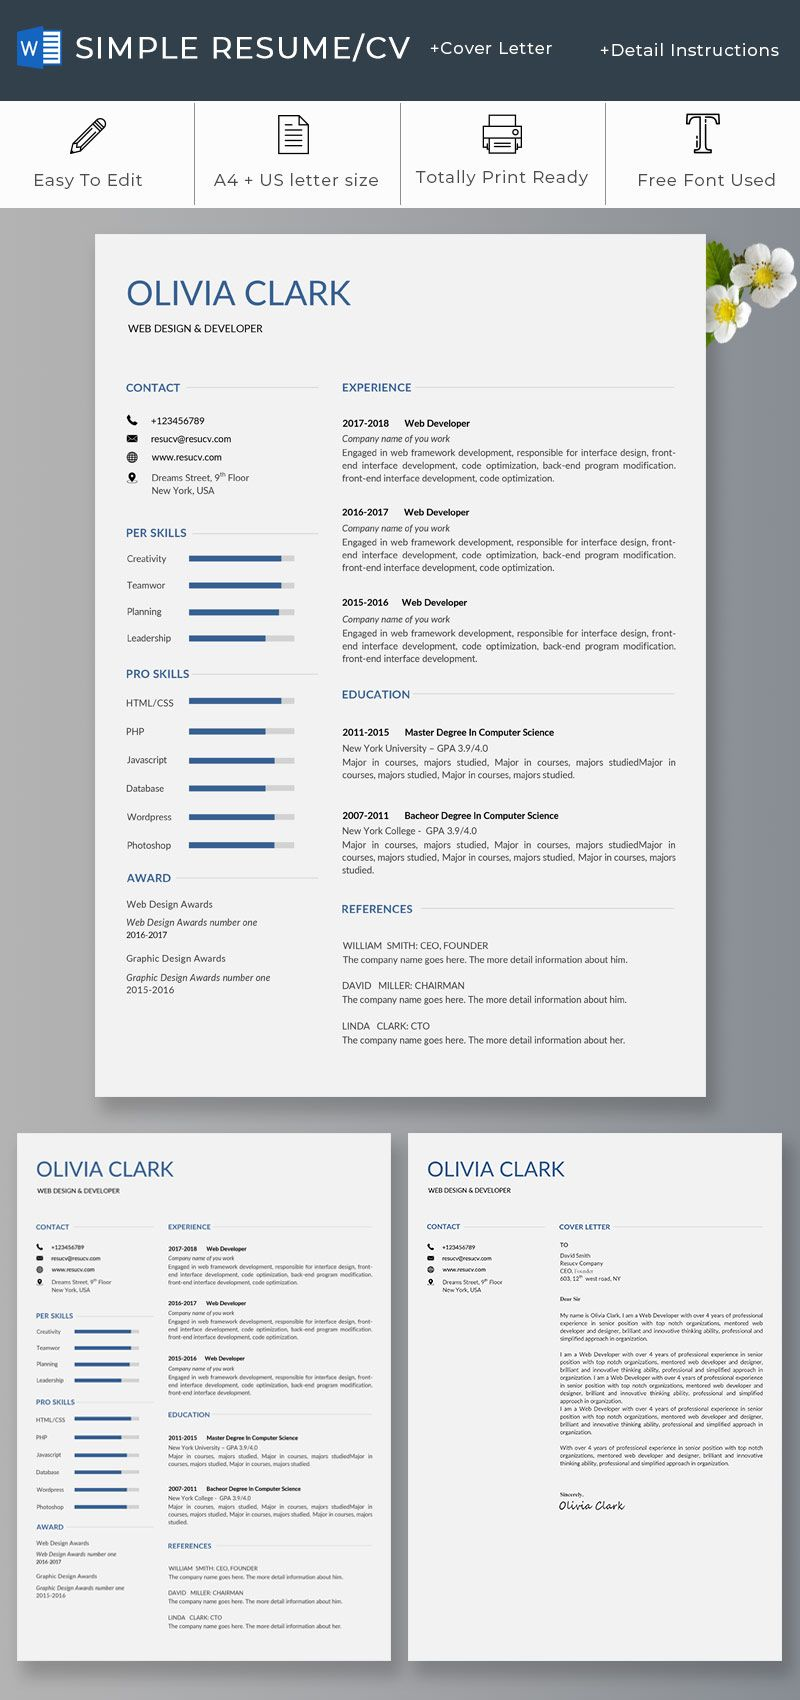 certified professional resume writers chronological college company best web designer Resume Professional Resume Help Nyc